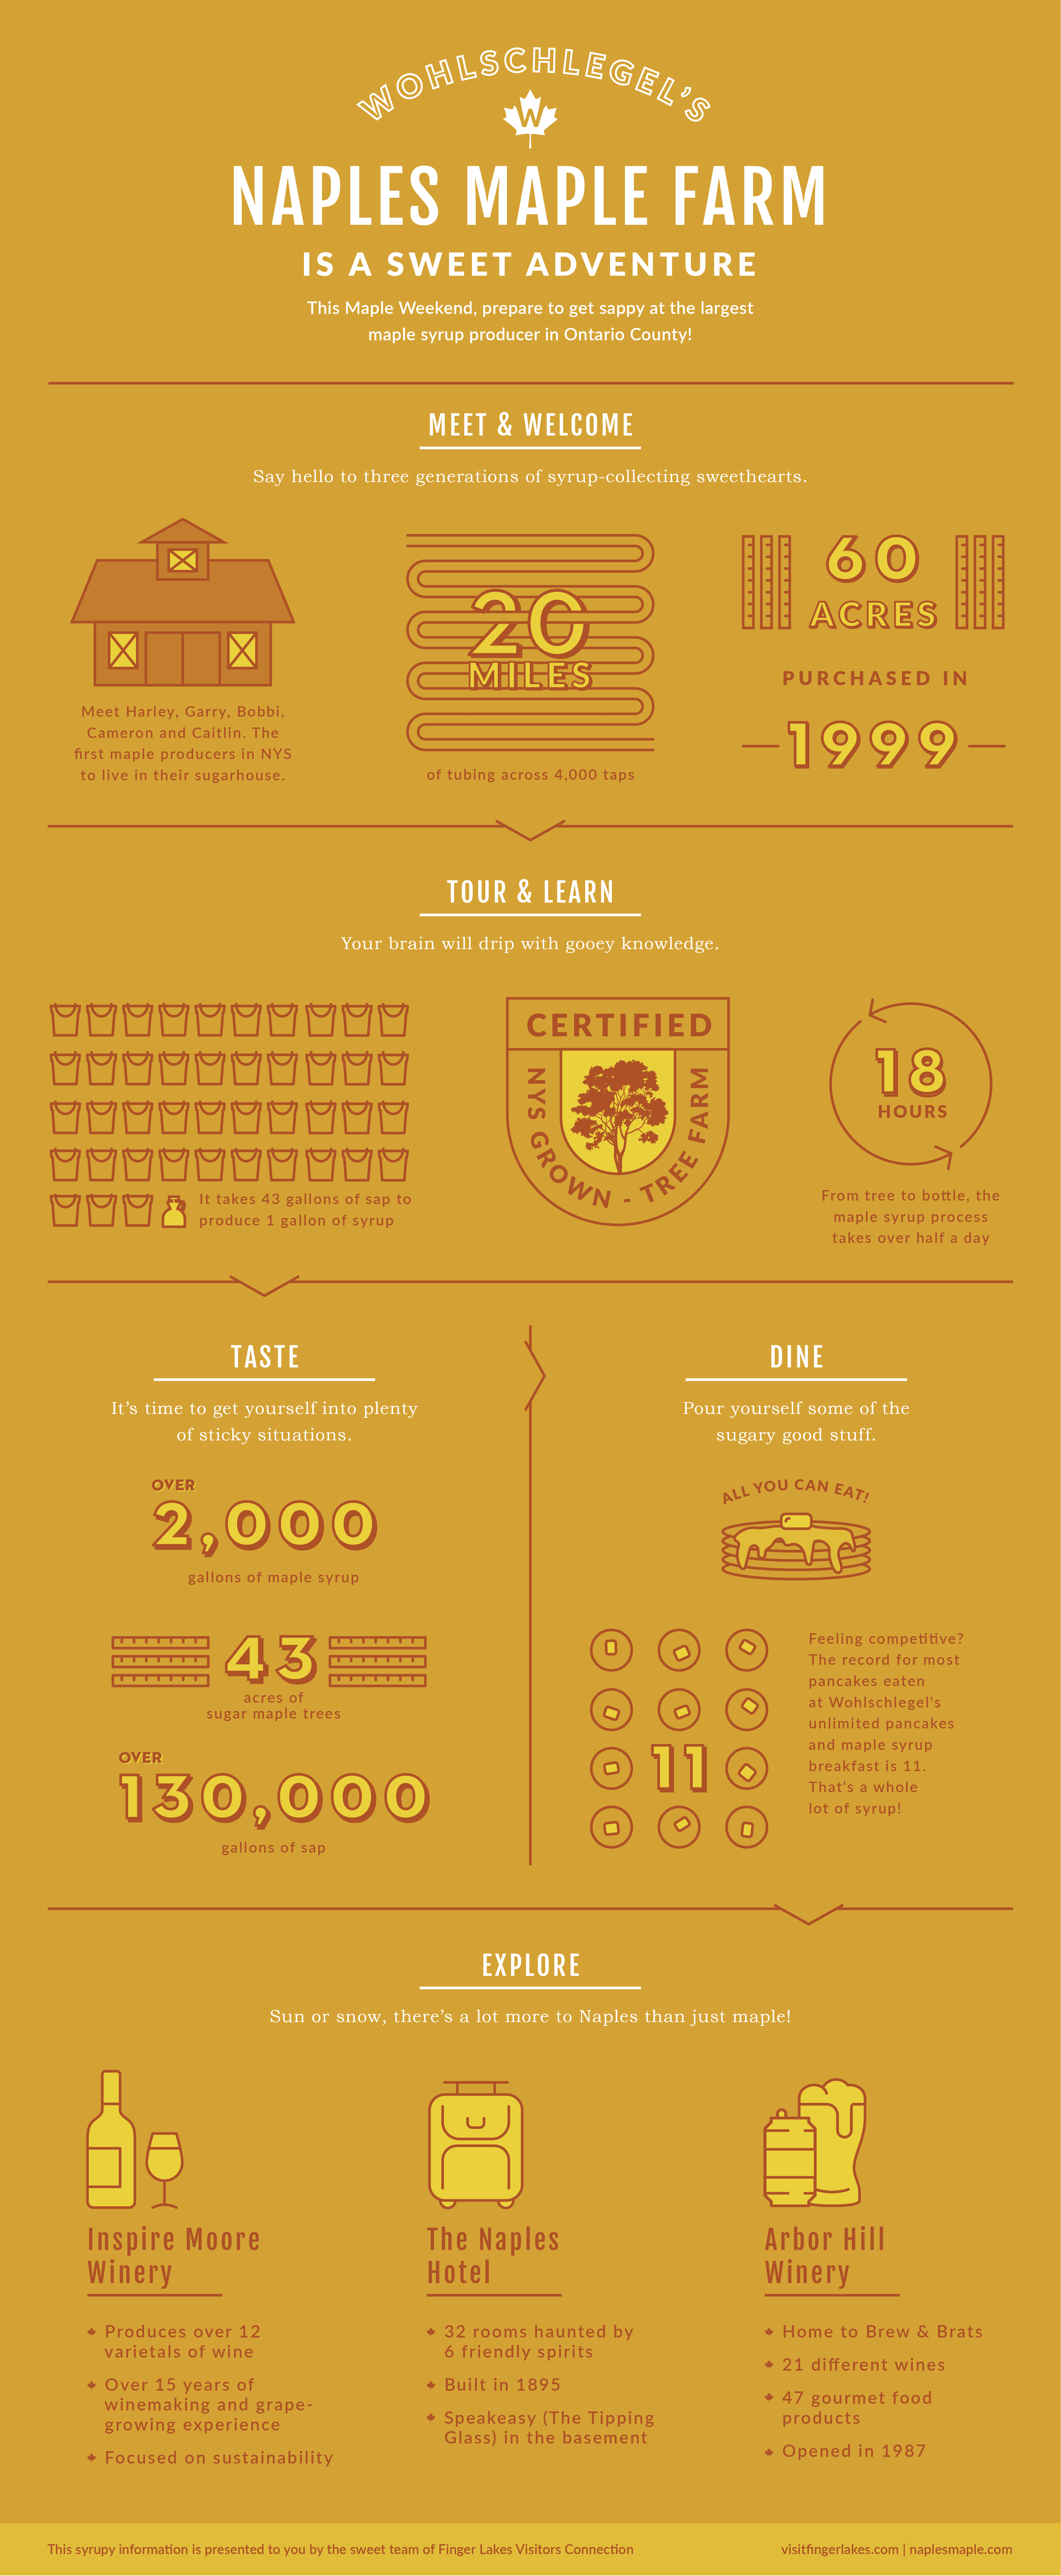 wohlschlegels-naples-maple-farm-infographic